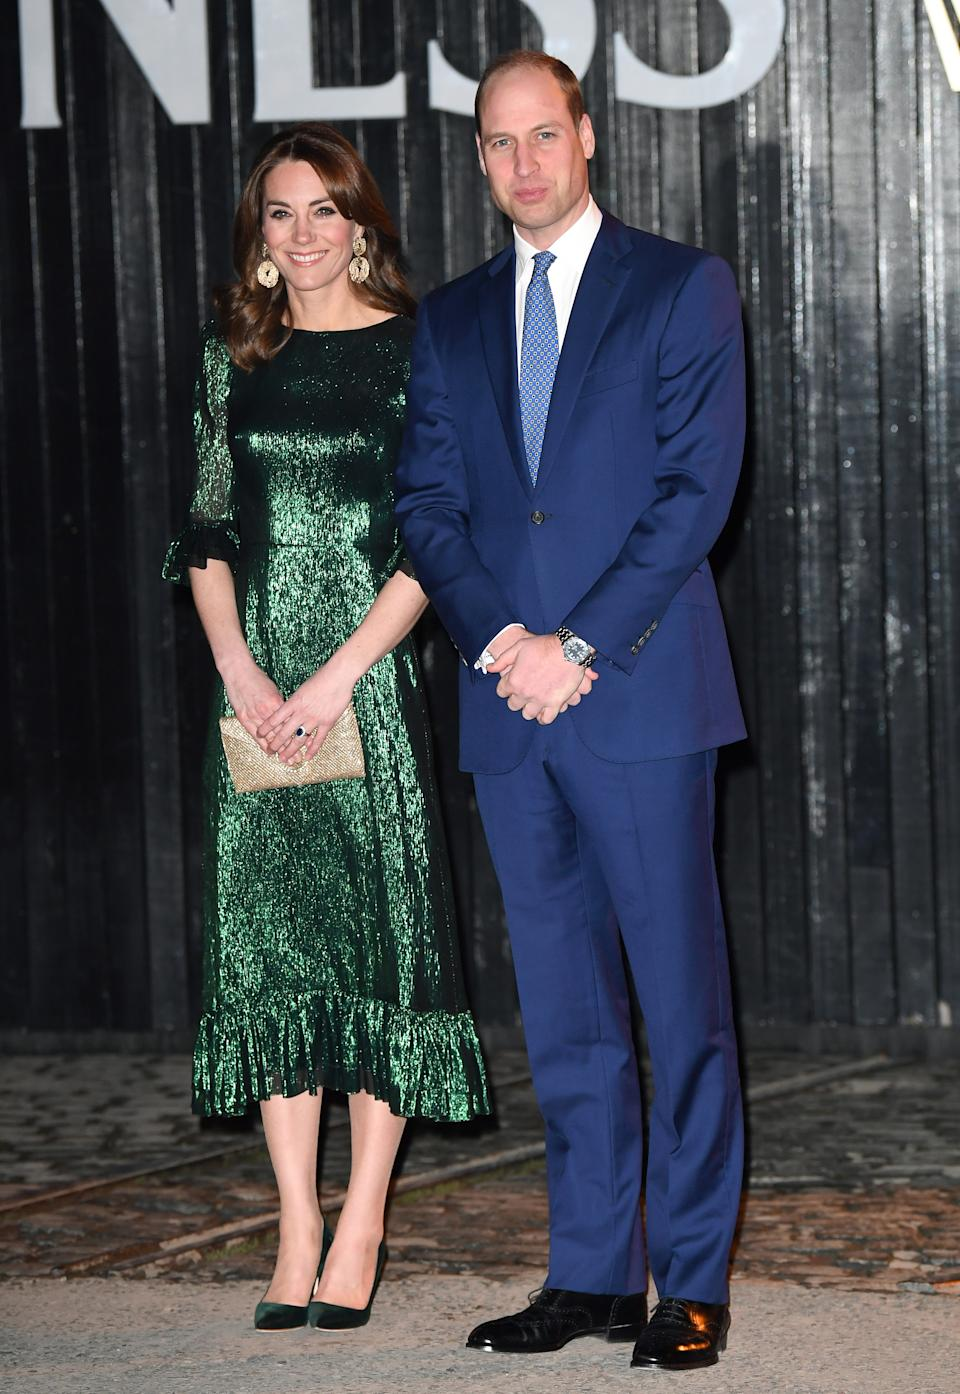 Duchess Catherine wore the Falconetti dress from The Vampire's Wife, which she paired with Manolo Blahnik heels and H&M earrings. (Getty)